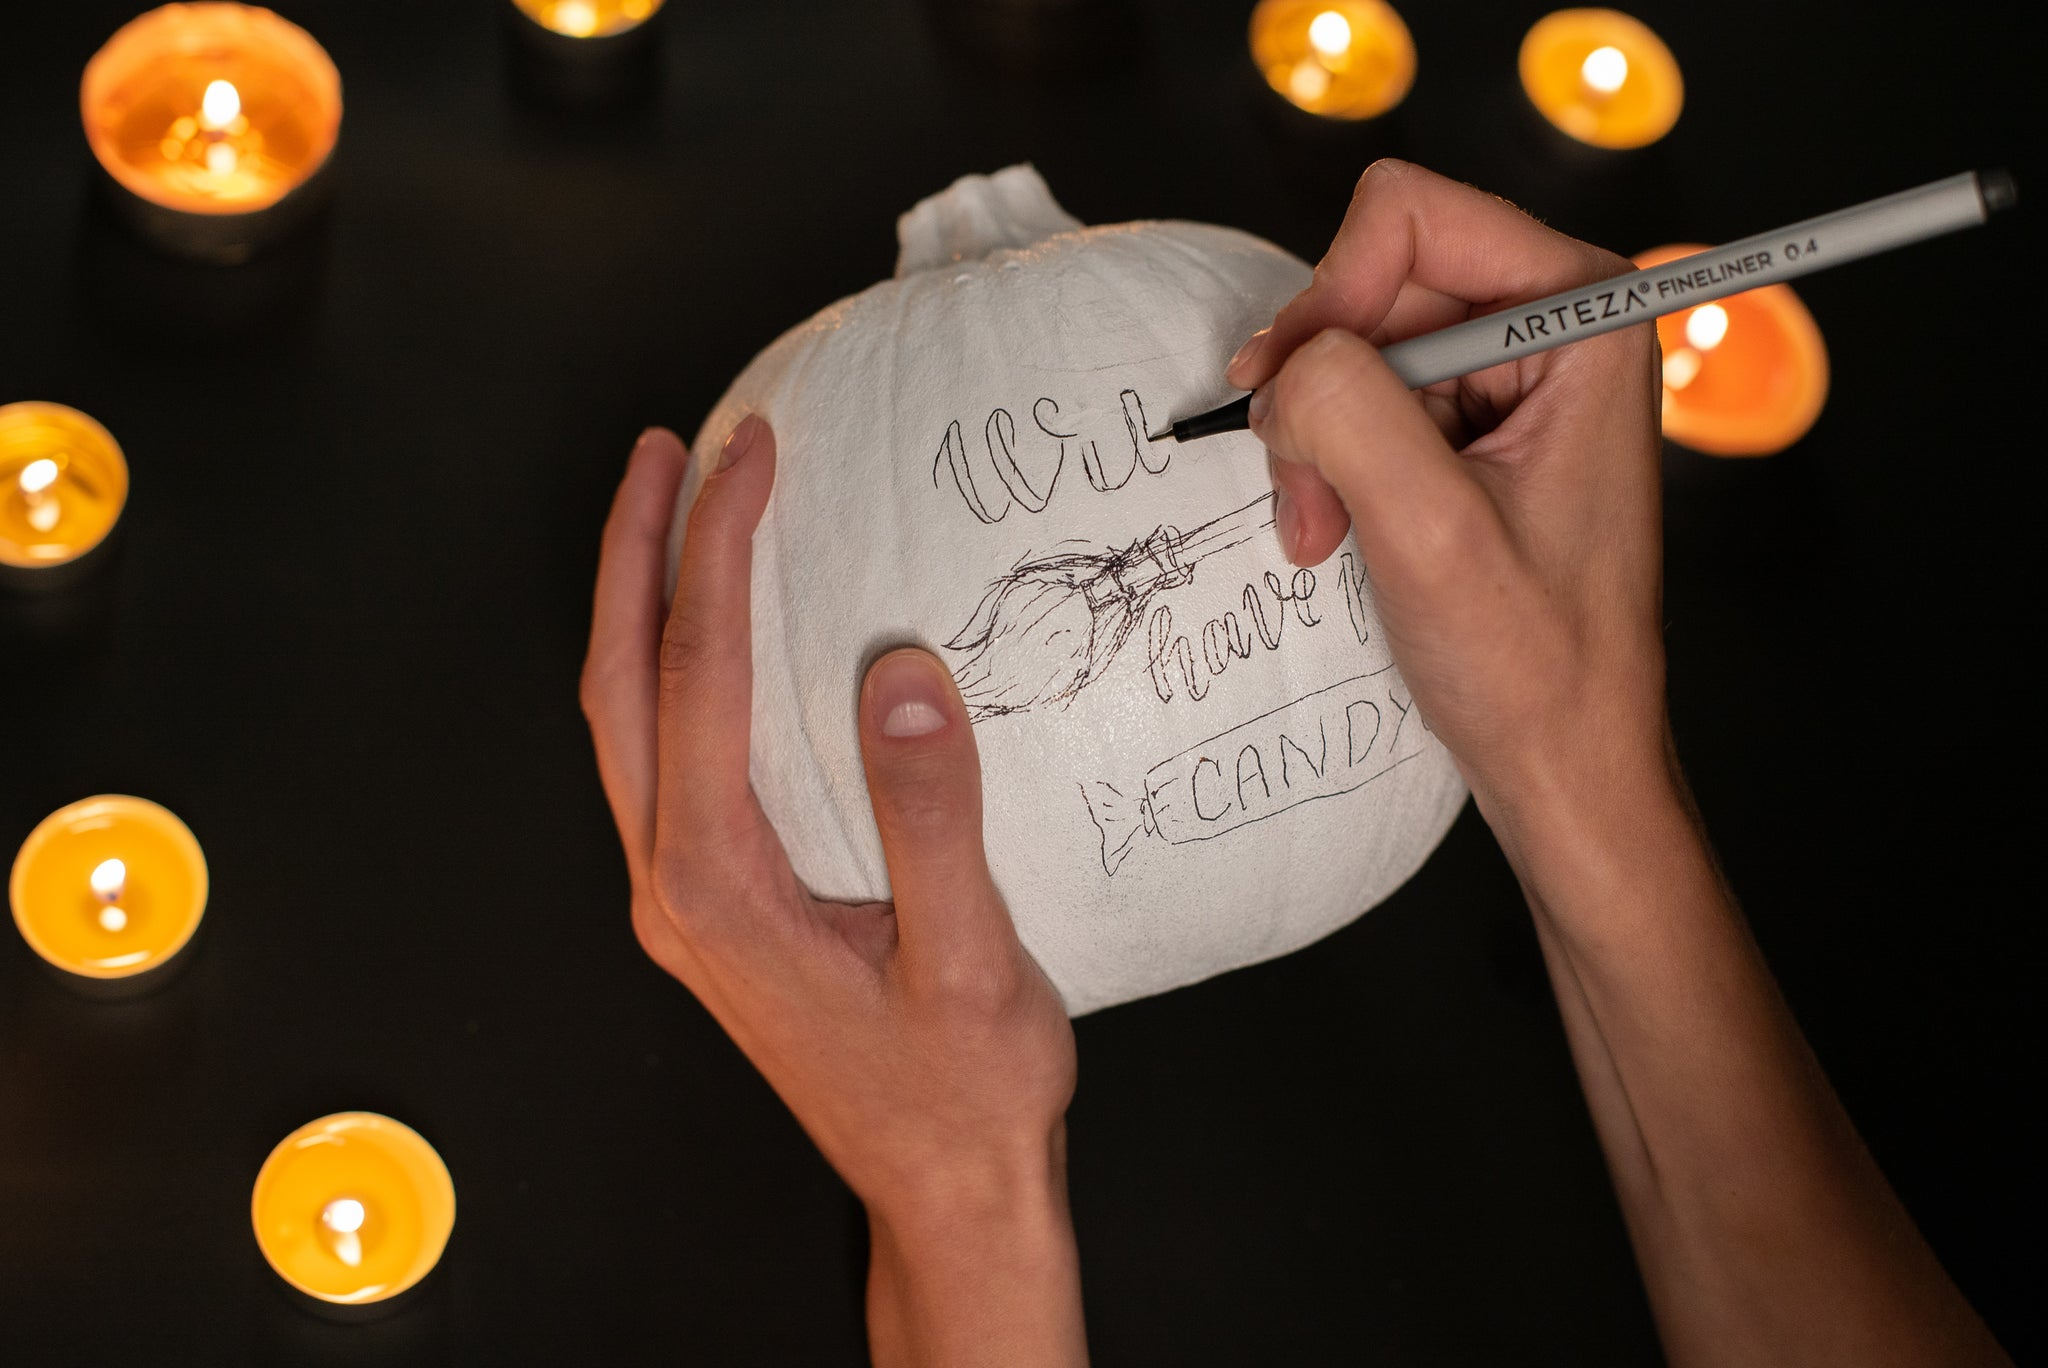 Drawing the design onto the pumpkin with a fineliner pen.